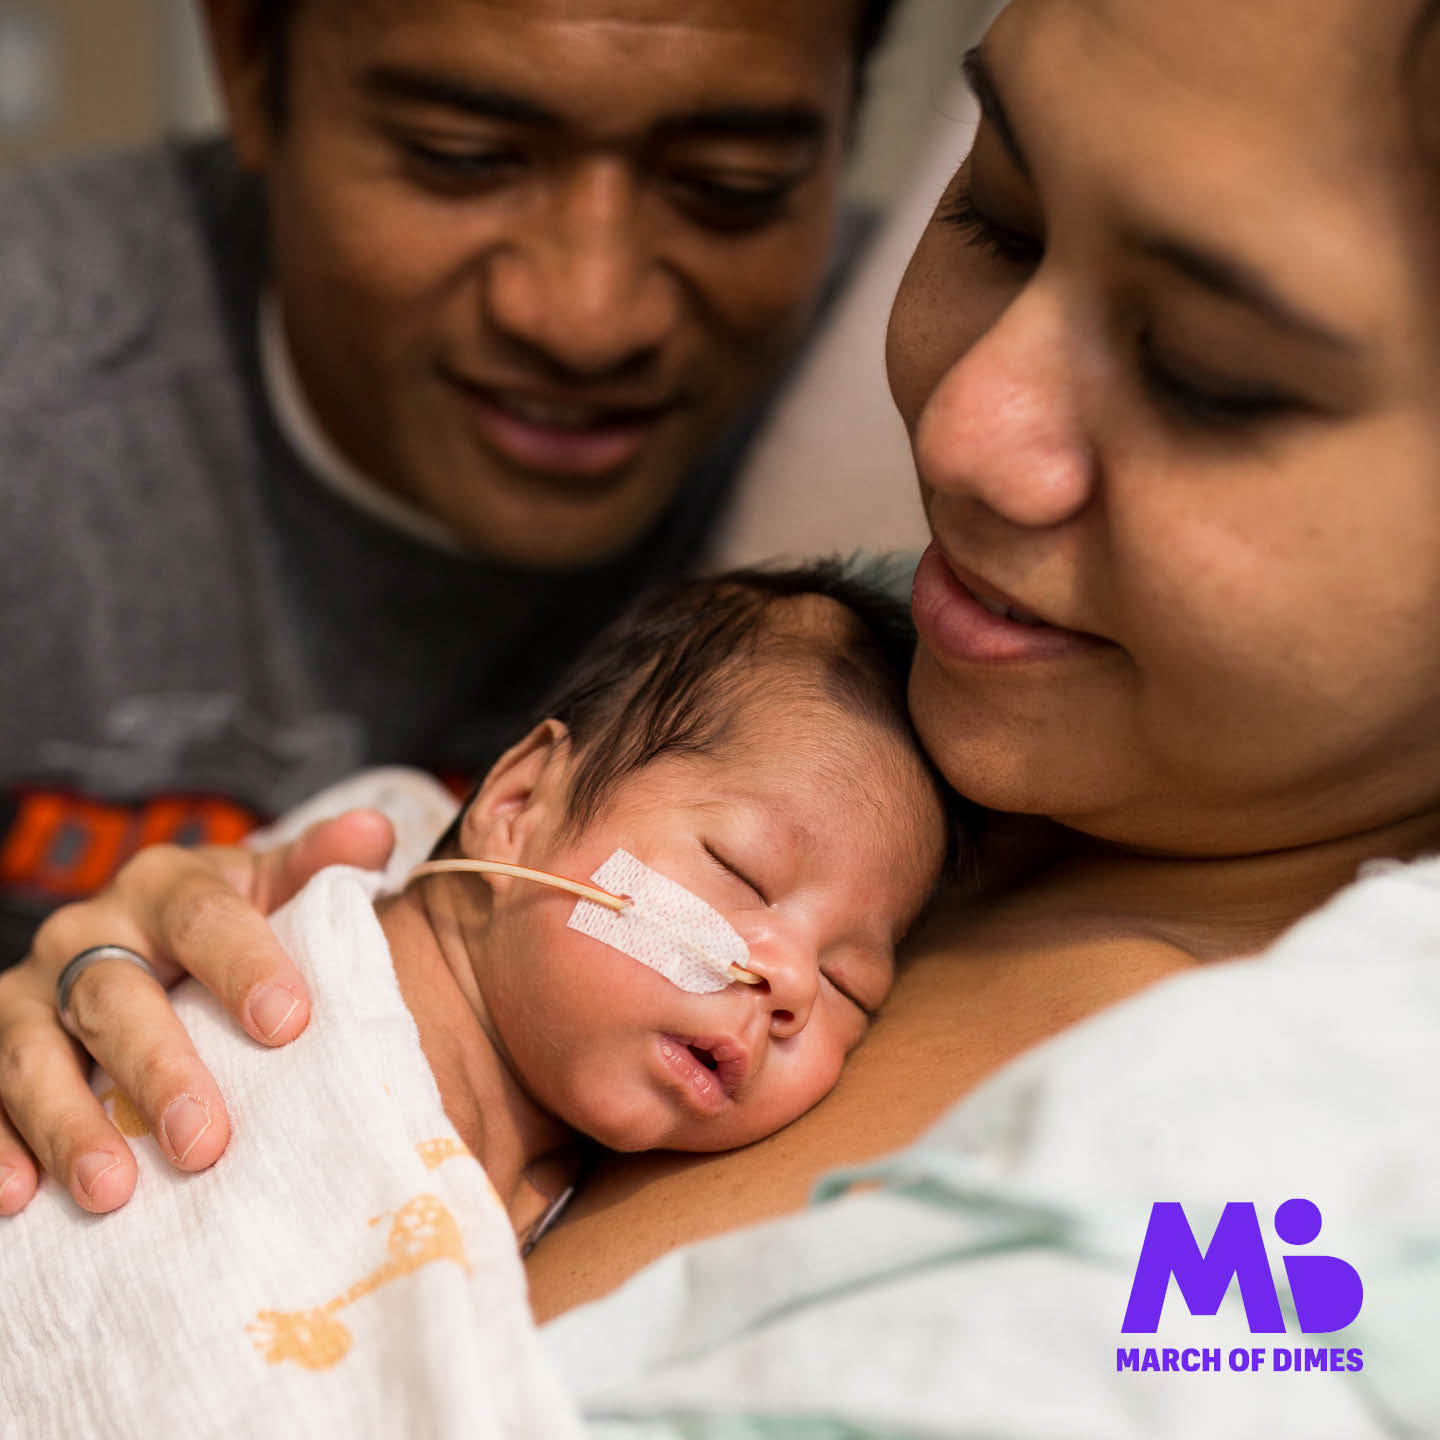 November is Prematurity Awareness Month. Join in the fight for the health of all moms and babies.